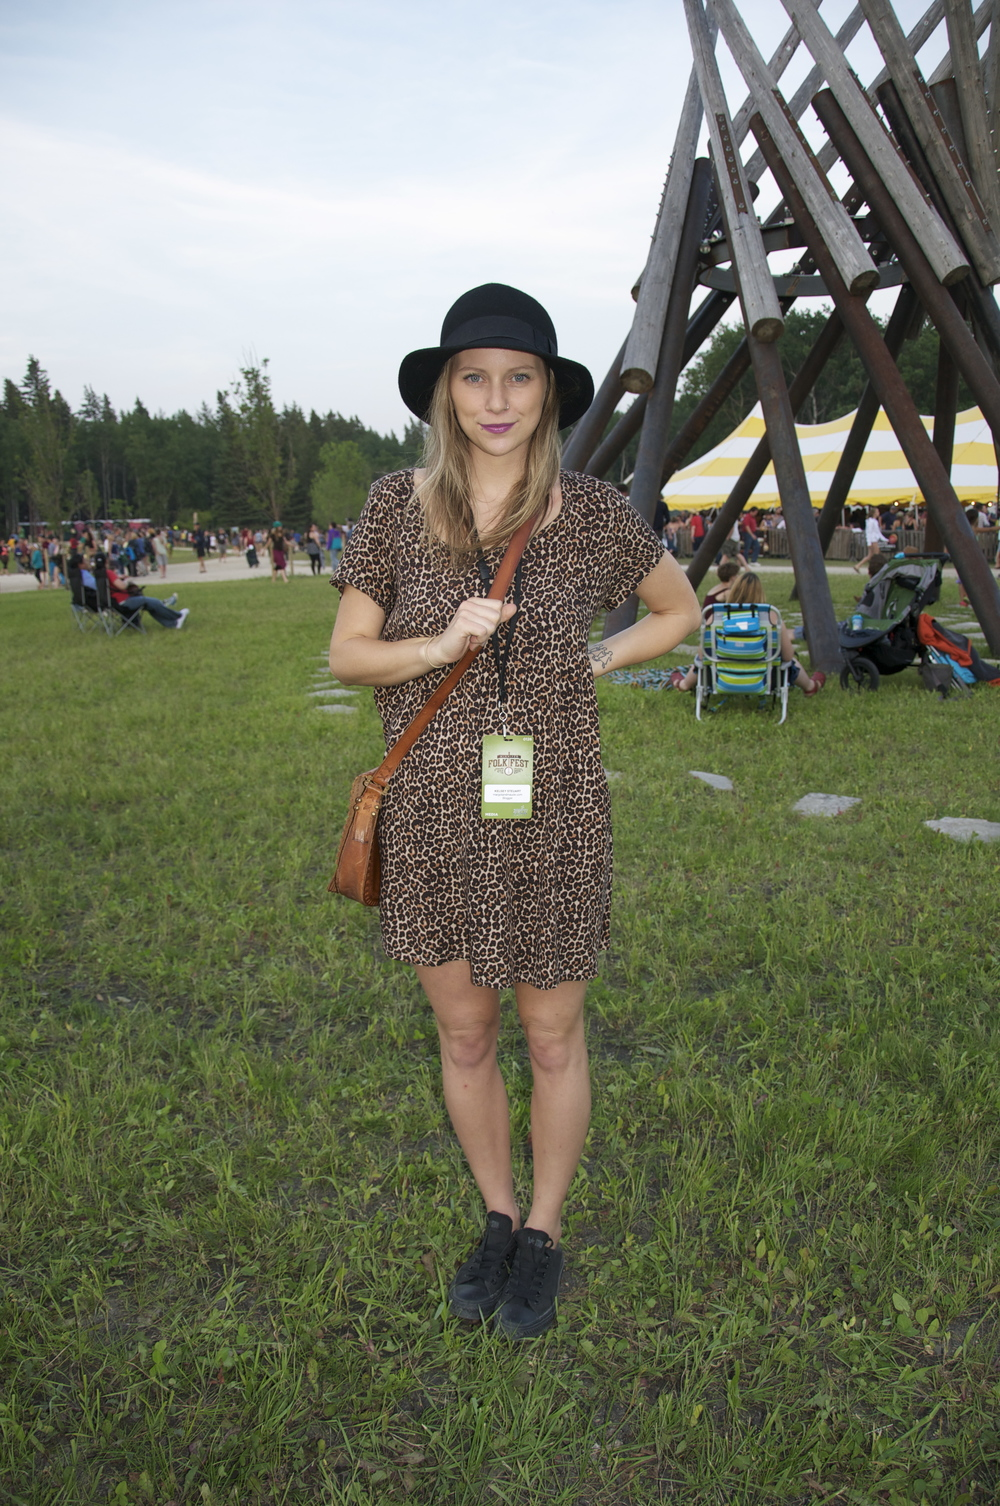 And here's what we wore (just in case you're curious): Kels in a leopard print baby doll dress + black converse + hat.